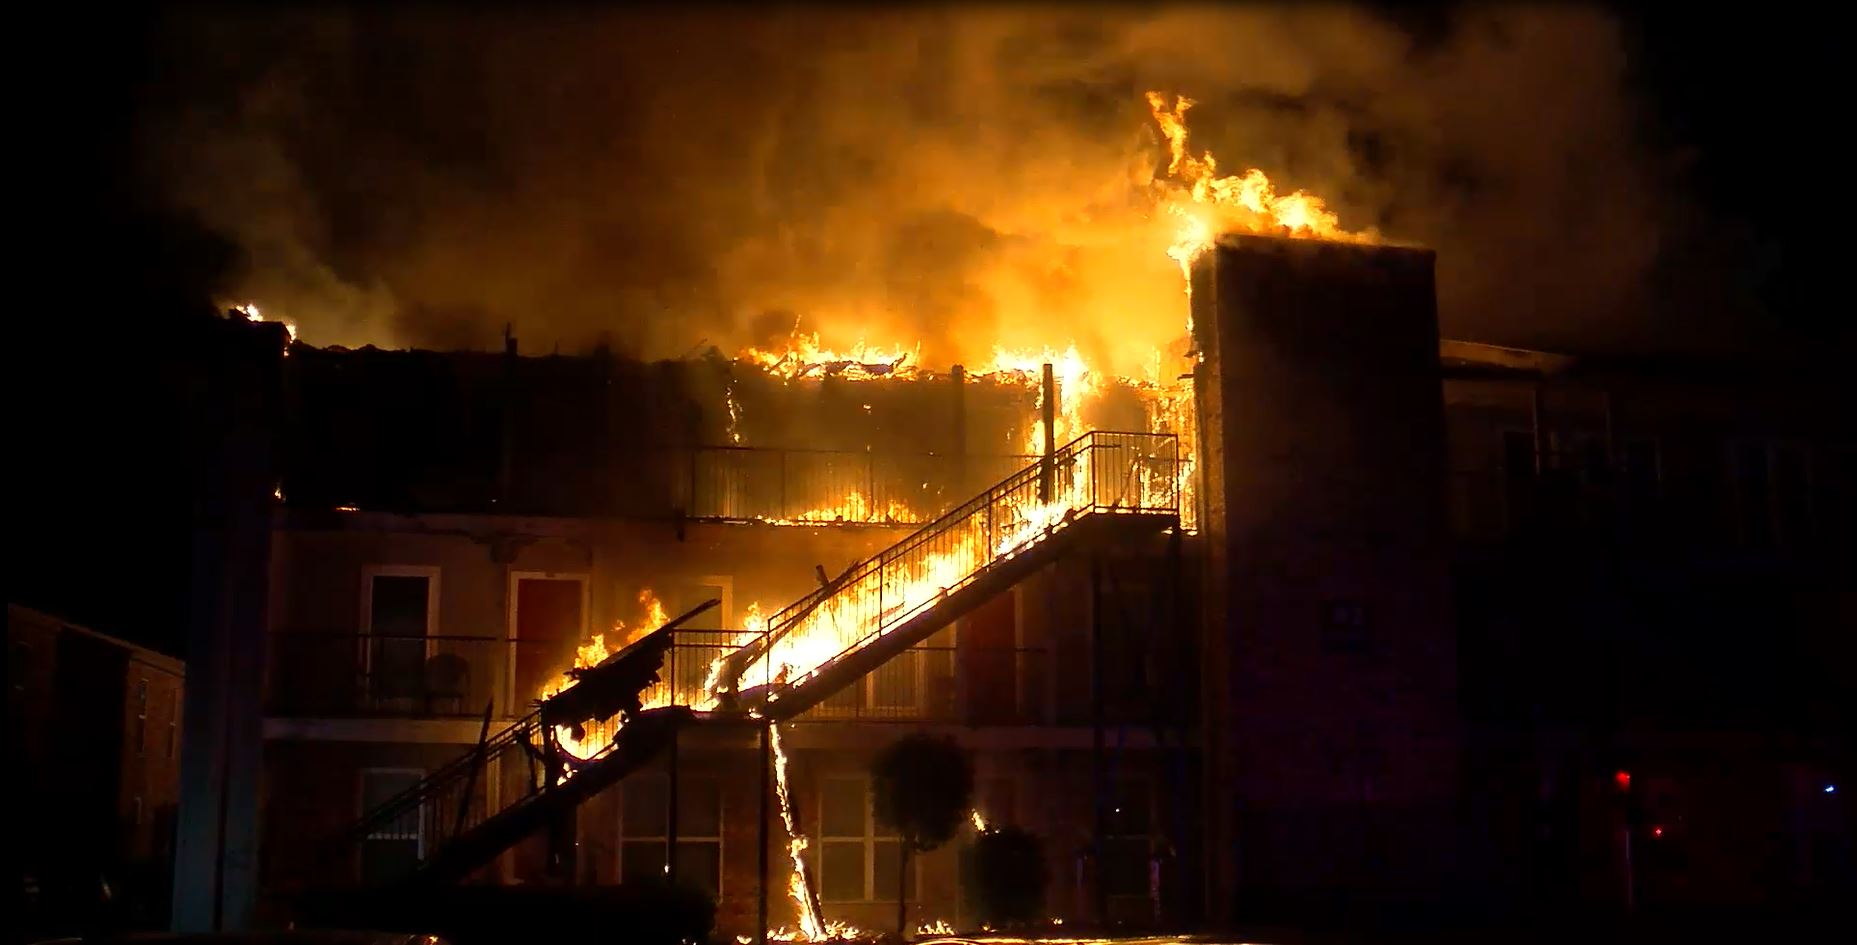 2-alarm fire near Humble destroys at least 24 homes, displaces 27 people